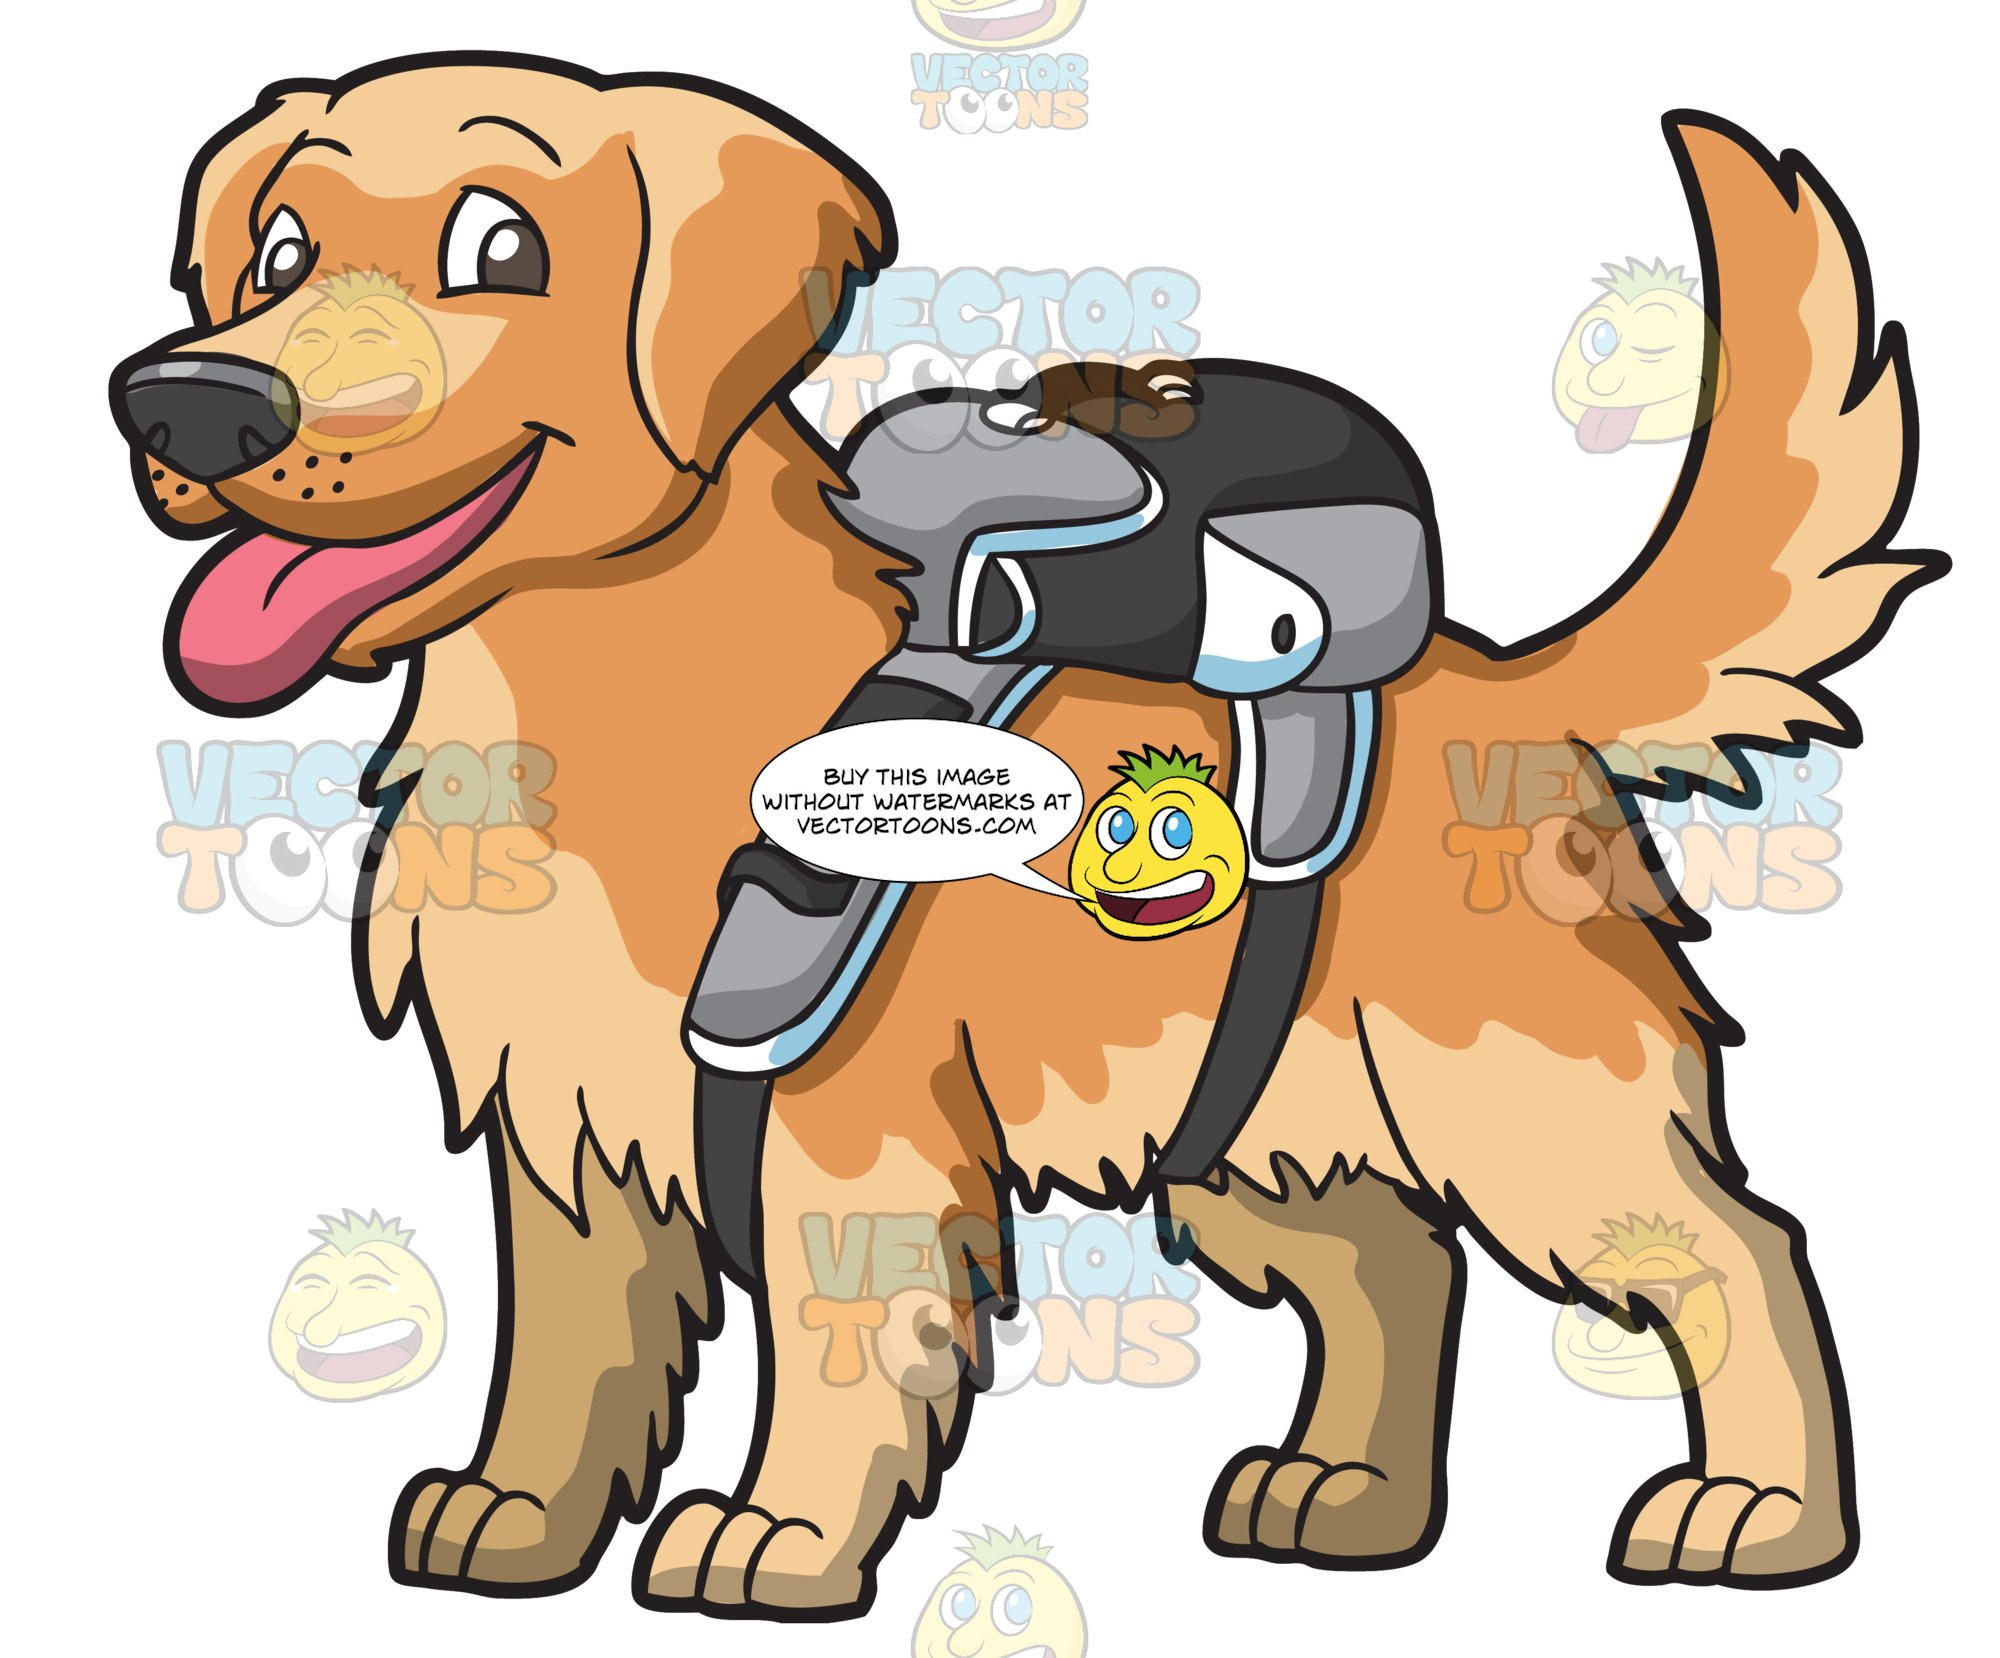 An Adorable Golden Brown Puppy Carrying A Backpack.